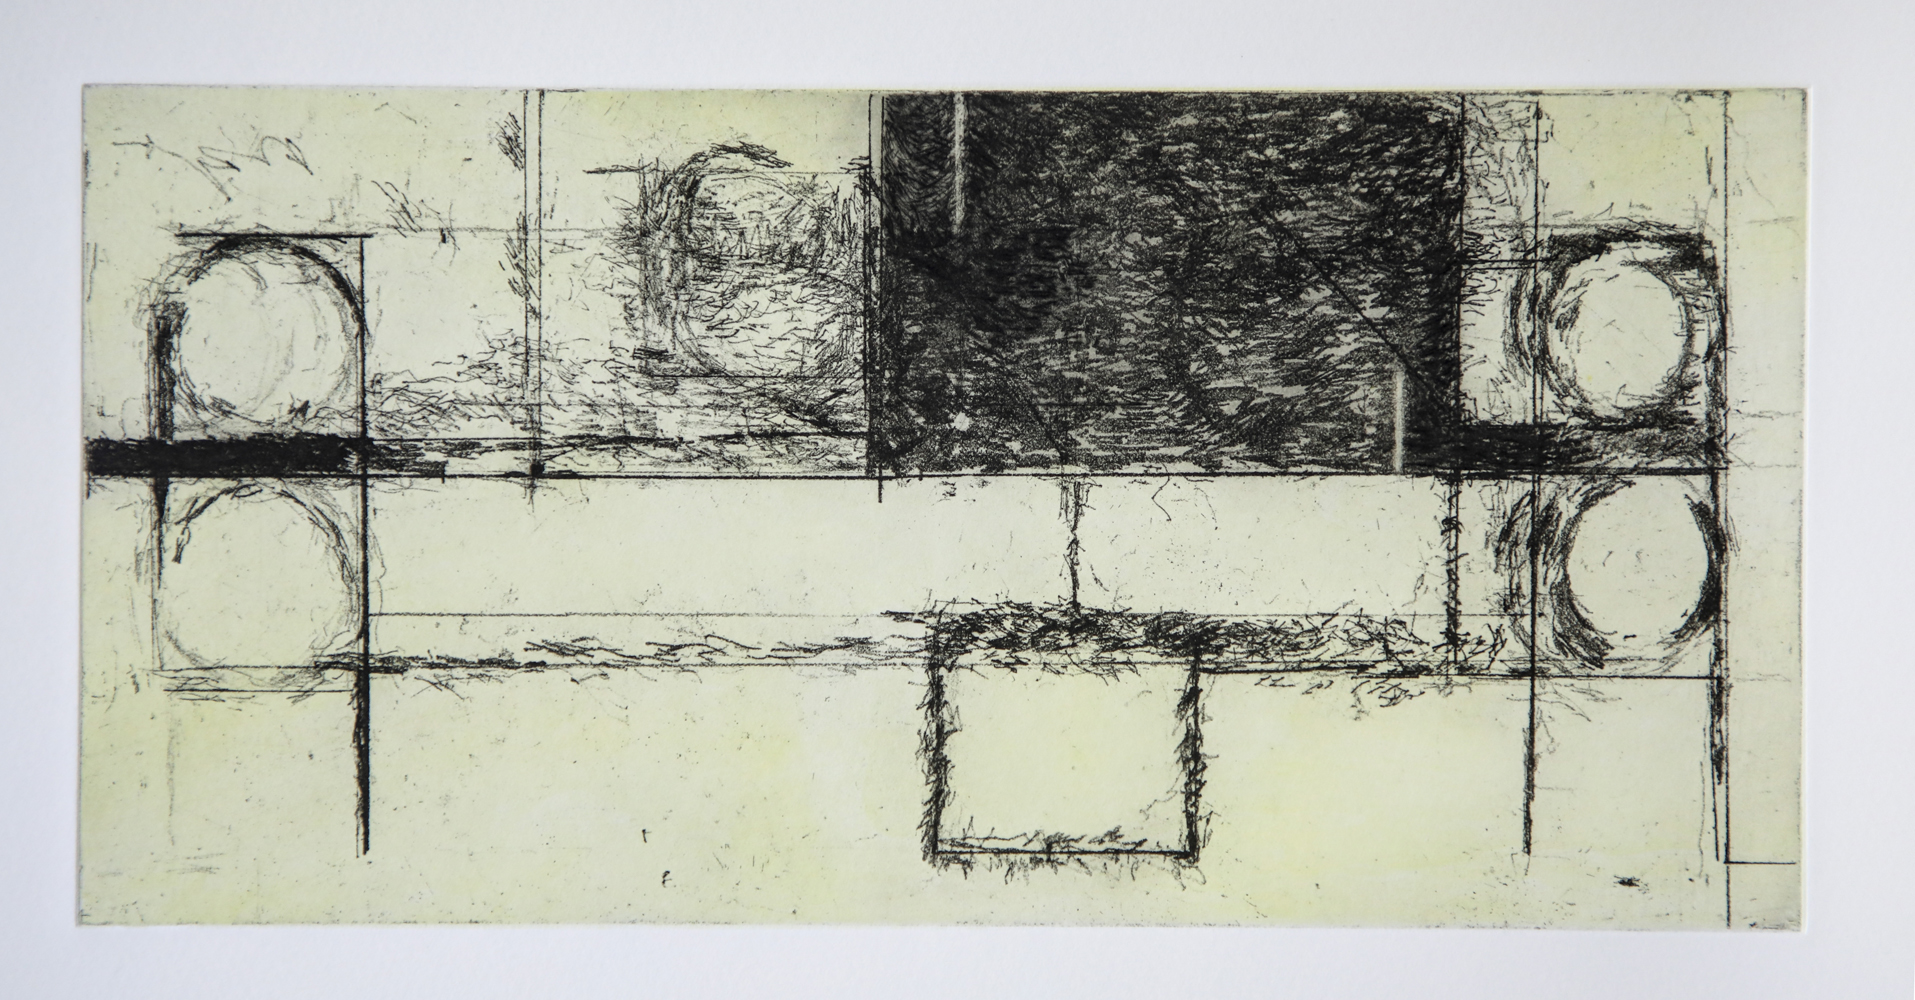 Robert C. Jones, Untitled (yellow), 2018, soft ground and aquatint etching with drypoint, edition of 15, paper size: 19.5 x 23 inches, image size: 5.875 x 11.875 inches, printed by Beta Press, $1000.